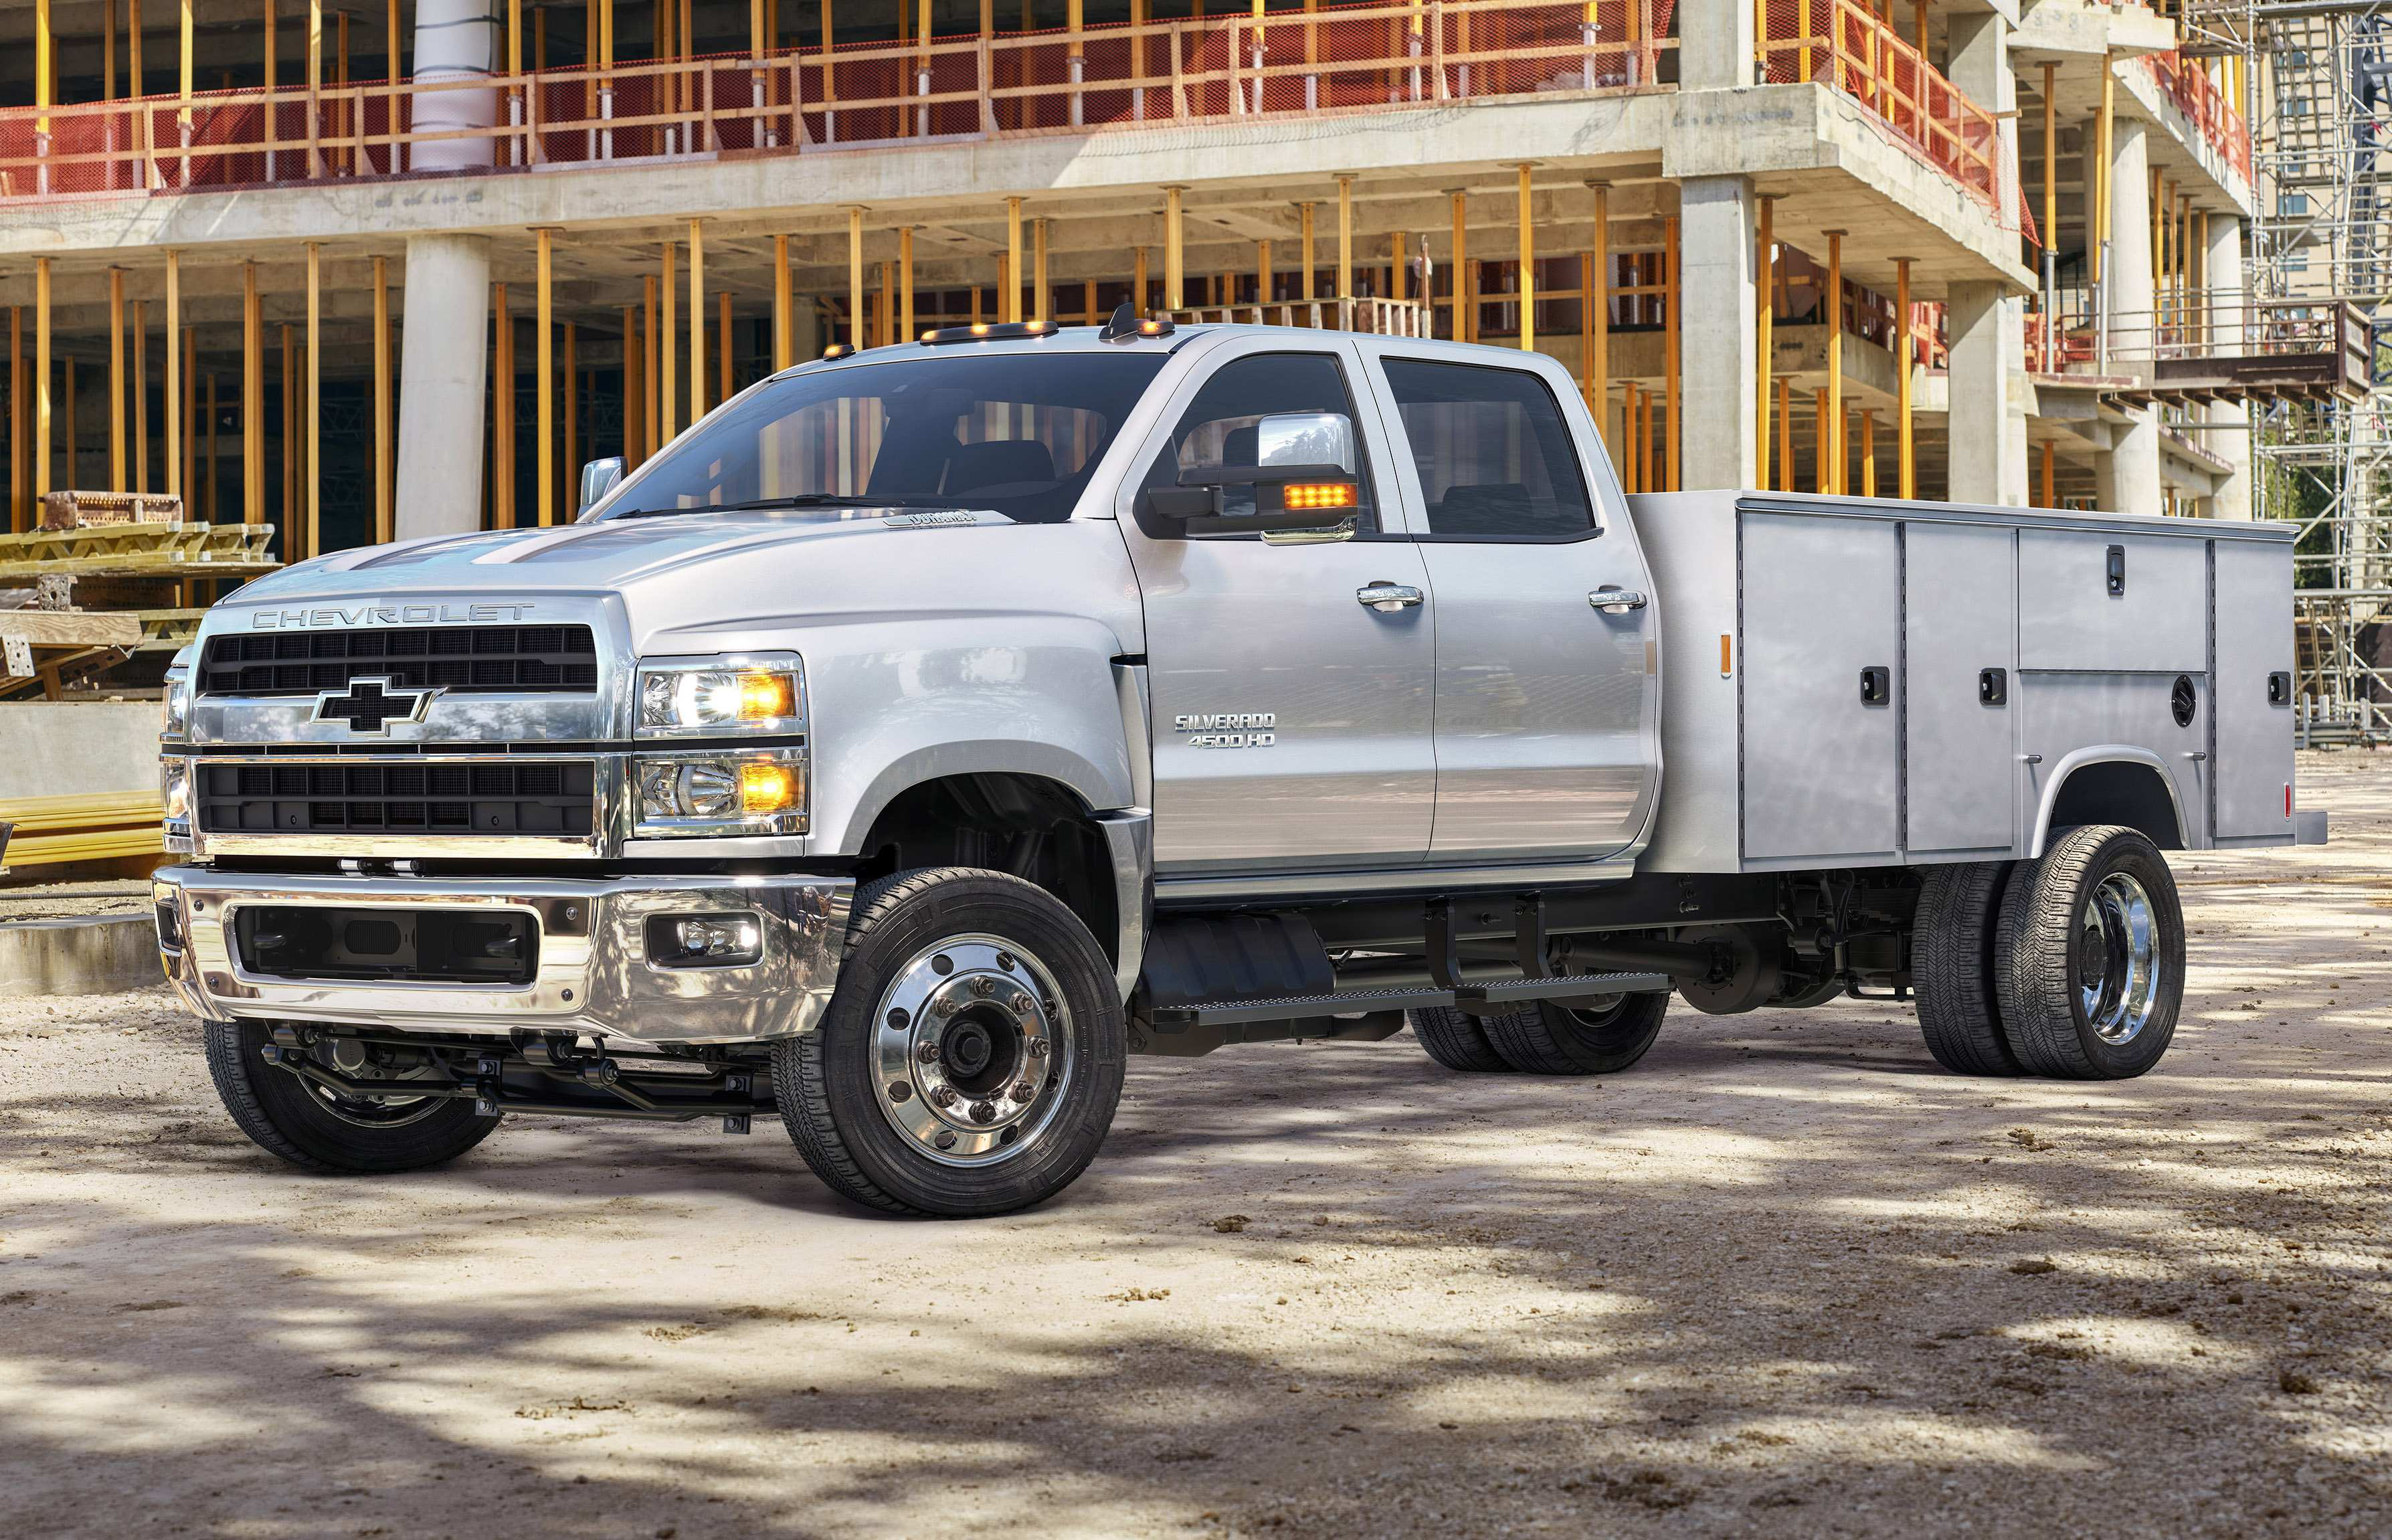 35 All New Chevrolet Lineup 2020 Pricing